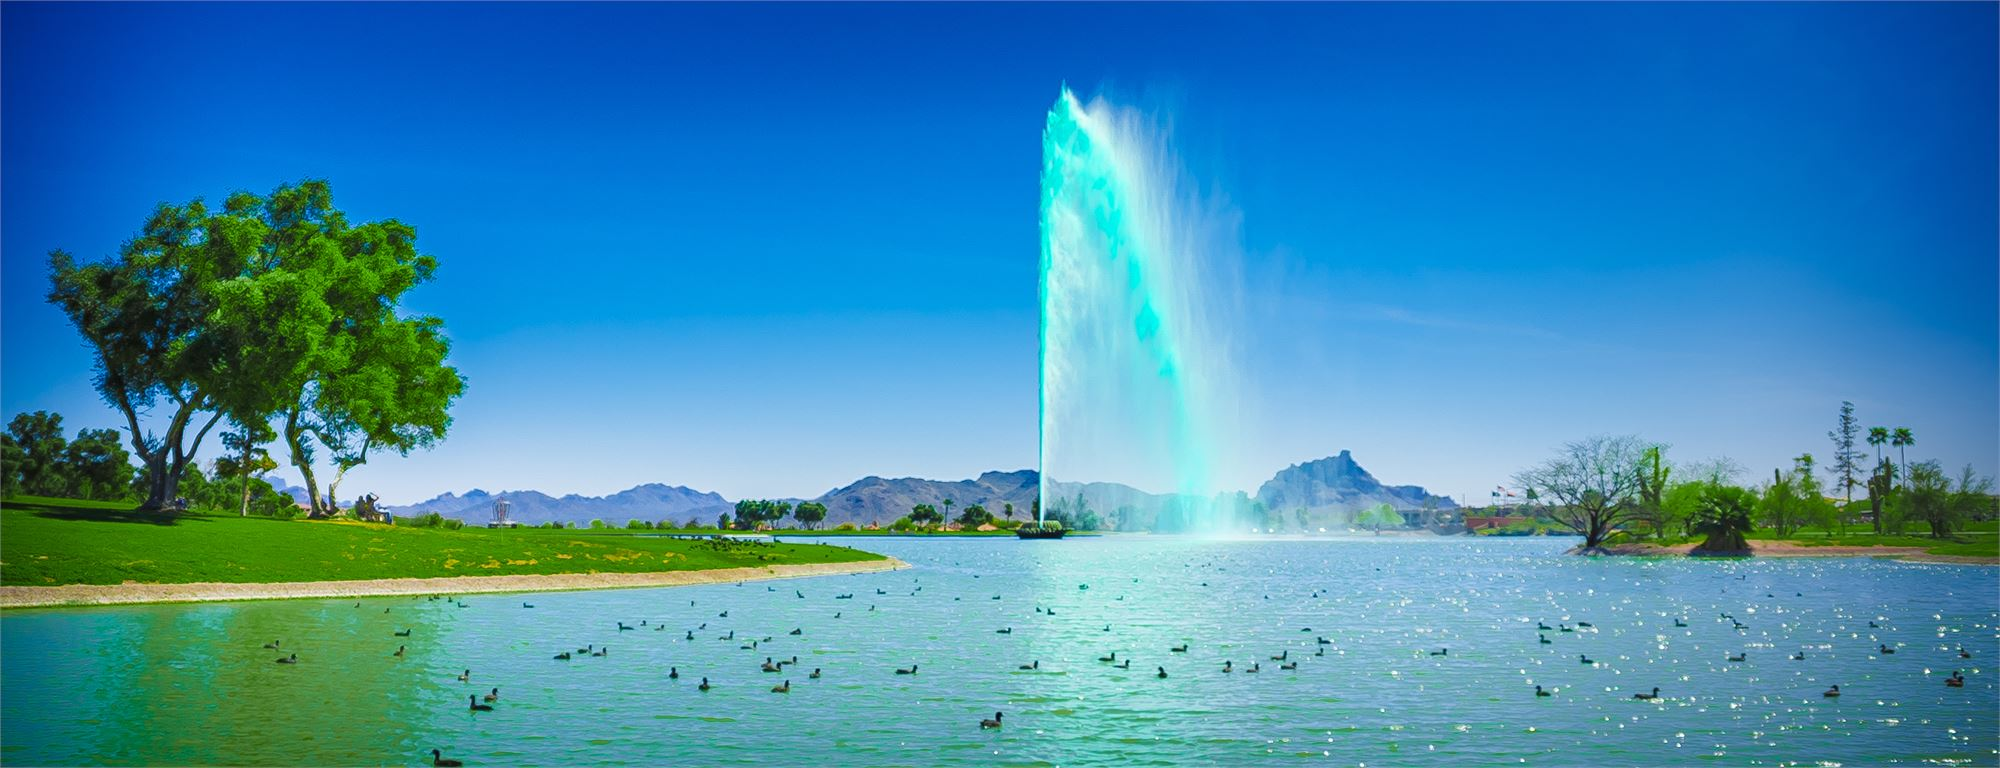 World Famous Green Fountain